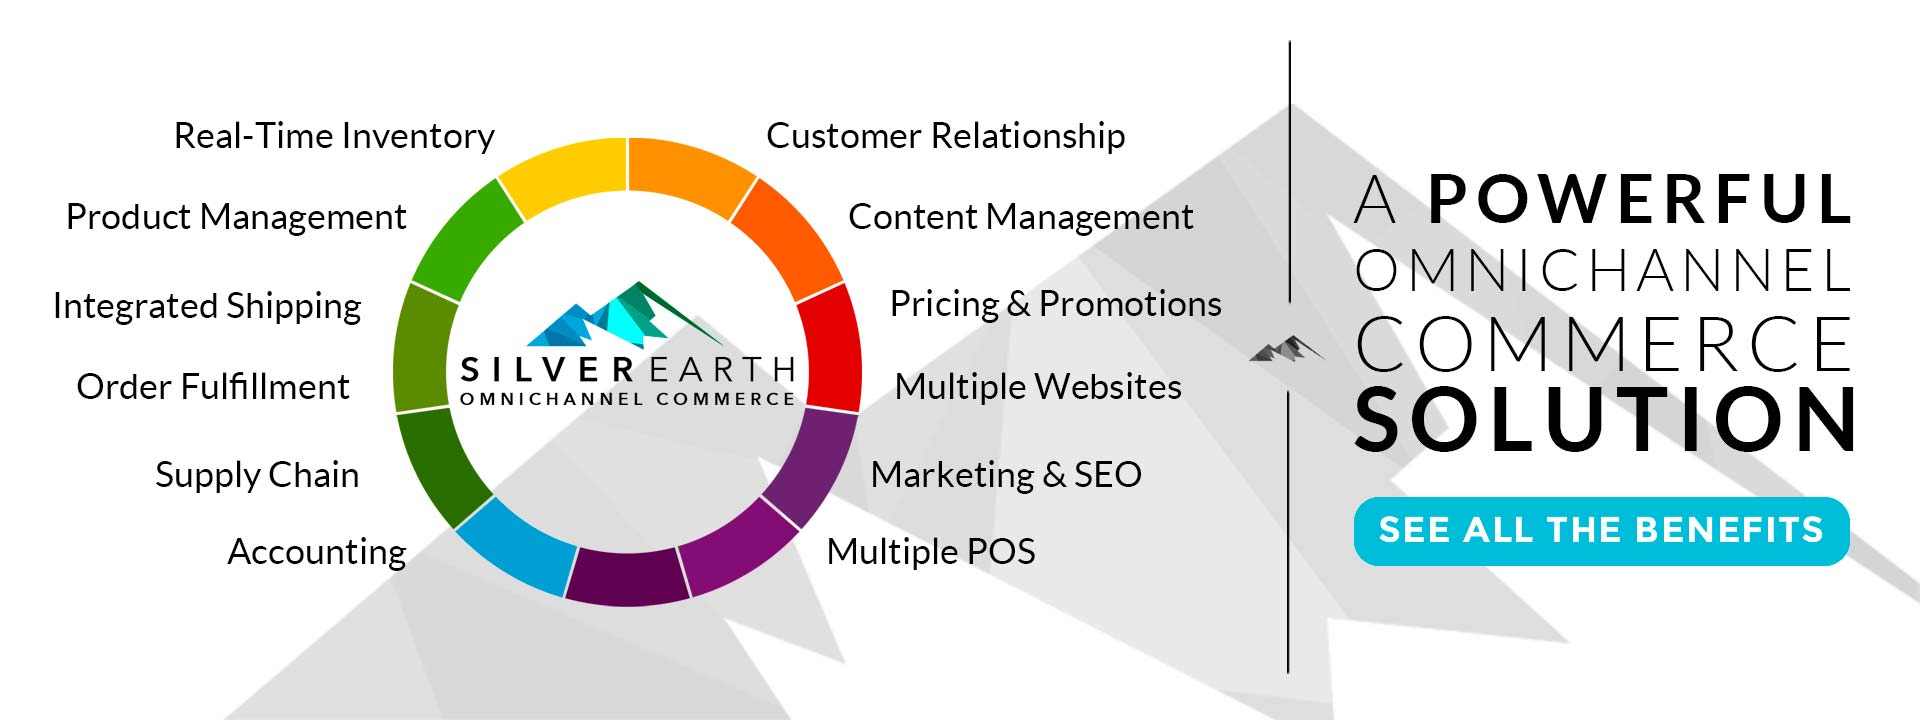 Silver Earth Pmni Channel Commerce - THE most powerful enterprise solution